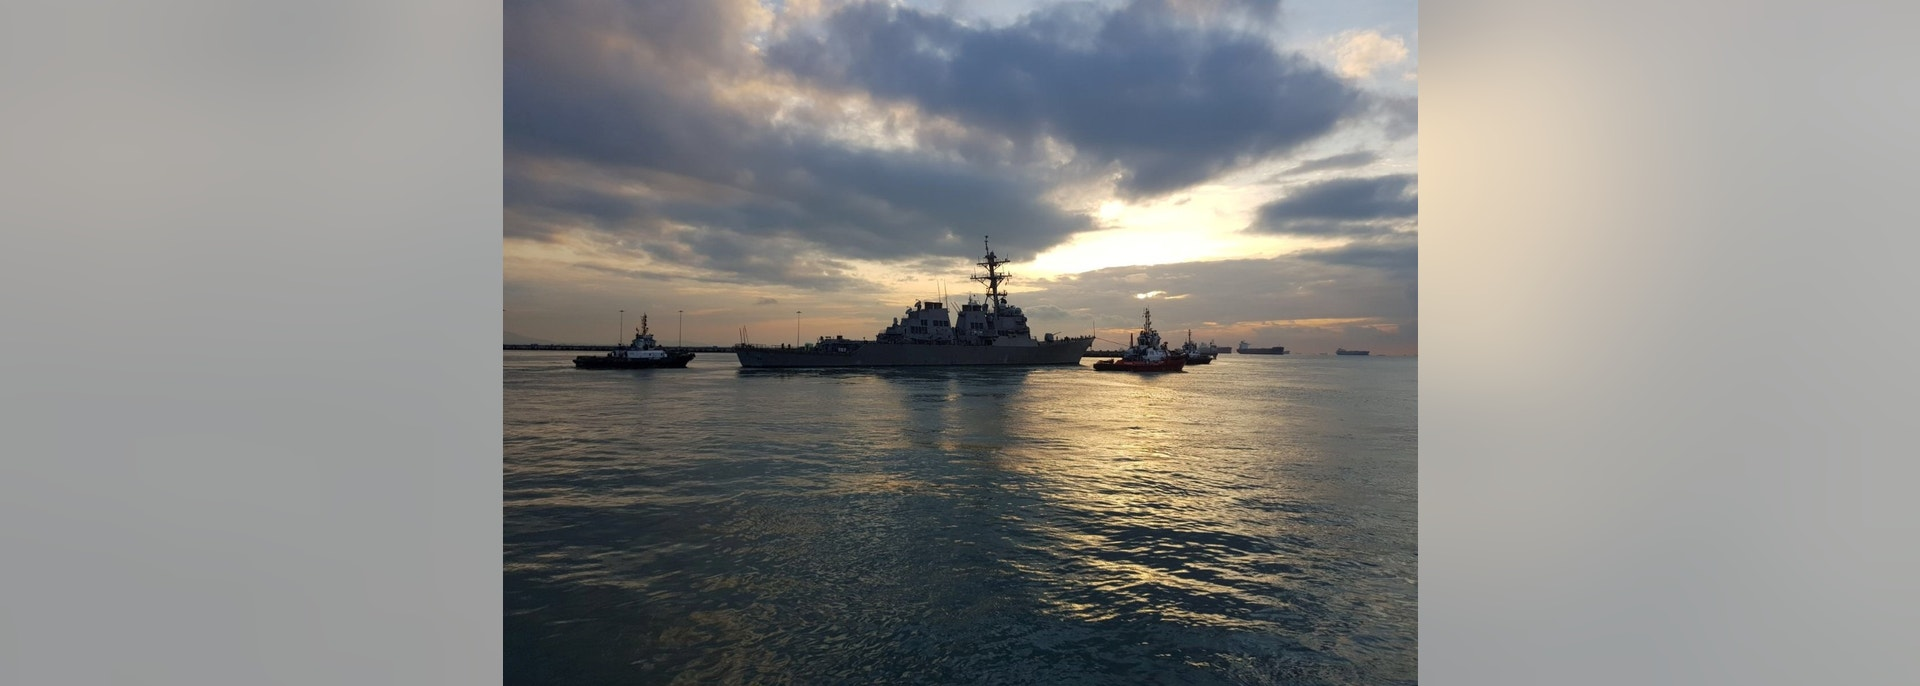 Arleigh Burke-class guided missile destroyer USS John S. McCain (DDG 56) is towed away from the pier at Changi Naval Base in Singapore to meet heavy lift transport vessel MV Treasure on route to Fleet Activities Yokosuka for repairs, October 5, 2017. Mass Communication Specialist 1st Class Micah Blechner/U.S. Navy Handout via REUTERS   ATTENTION EDITORS - THIS IMAGE WAS PROVIDED BY A THIRD PARTY. - RC1A5D2862E0